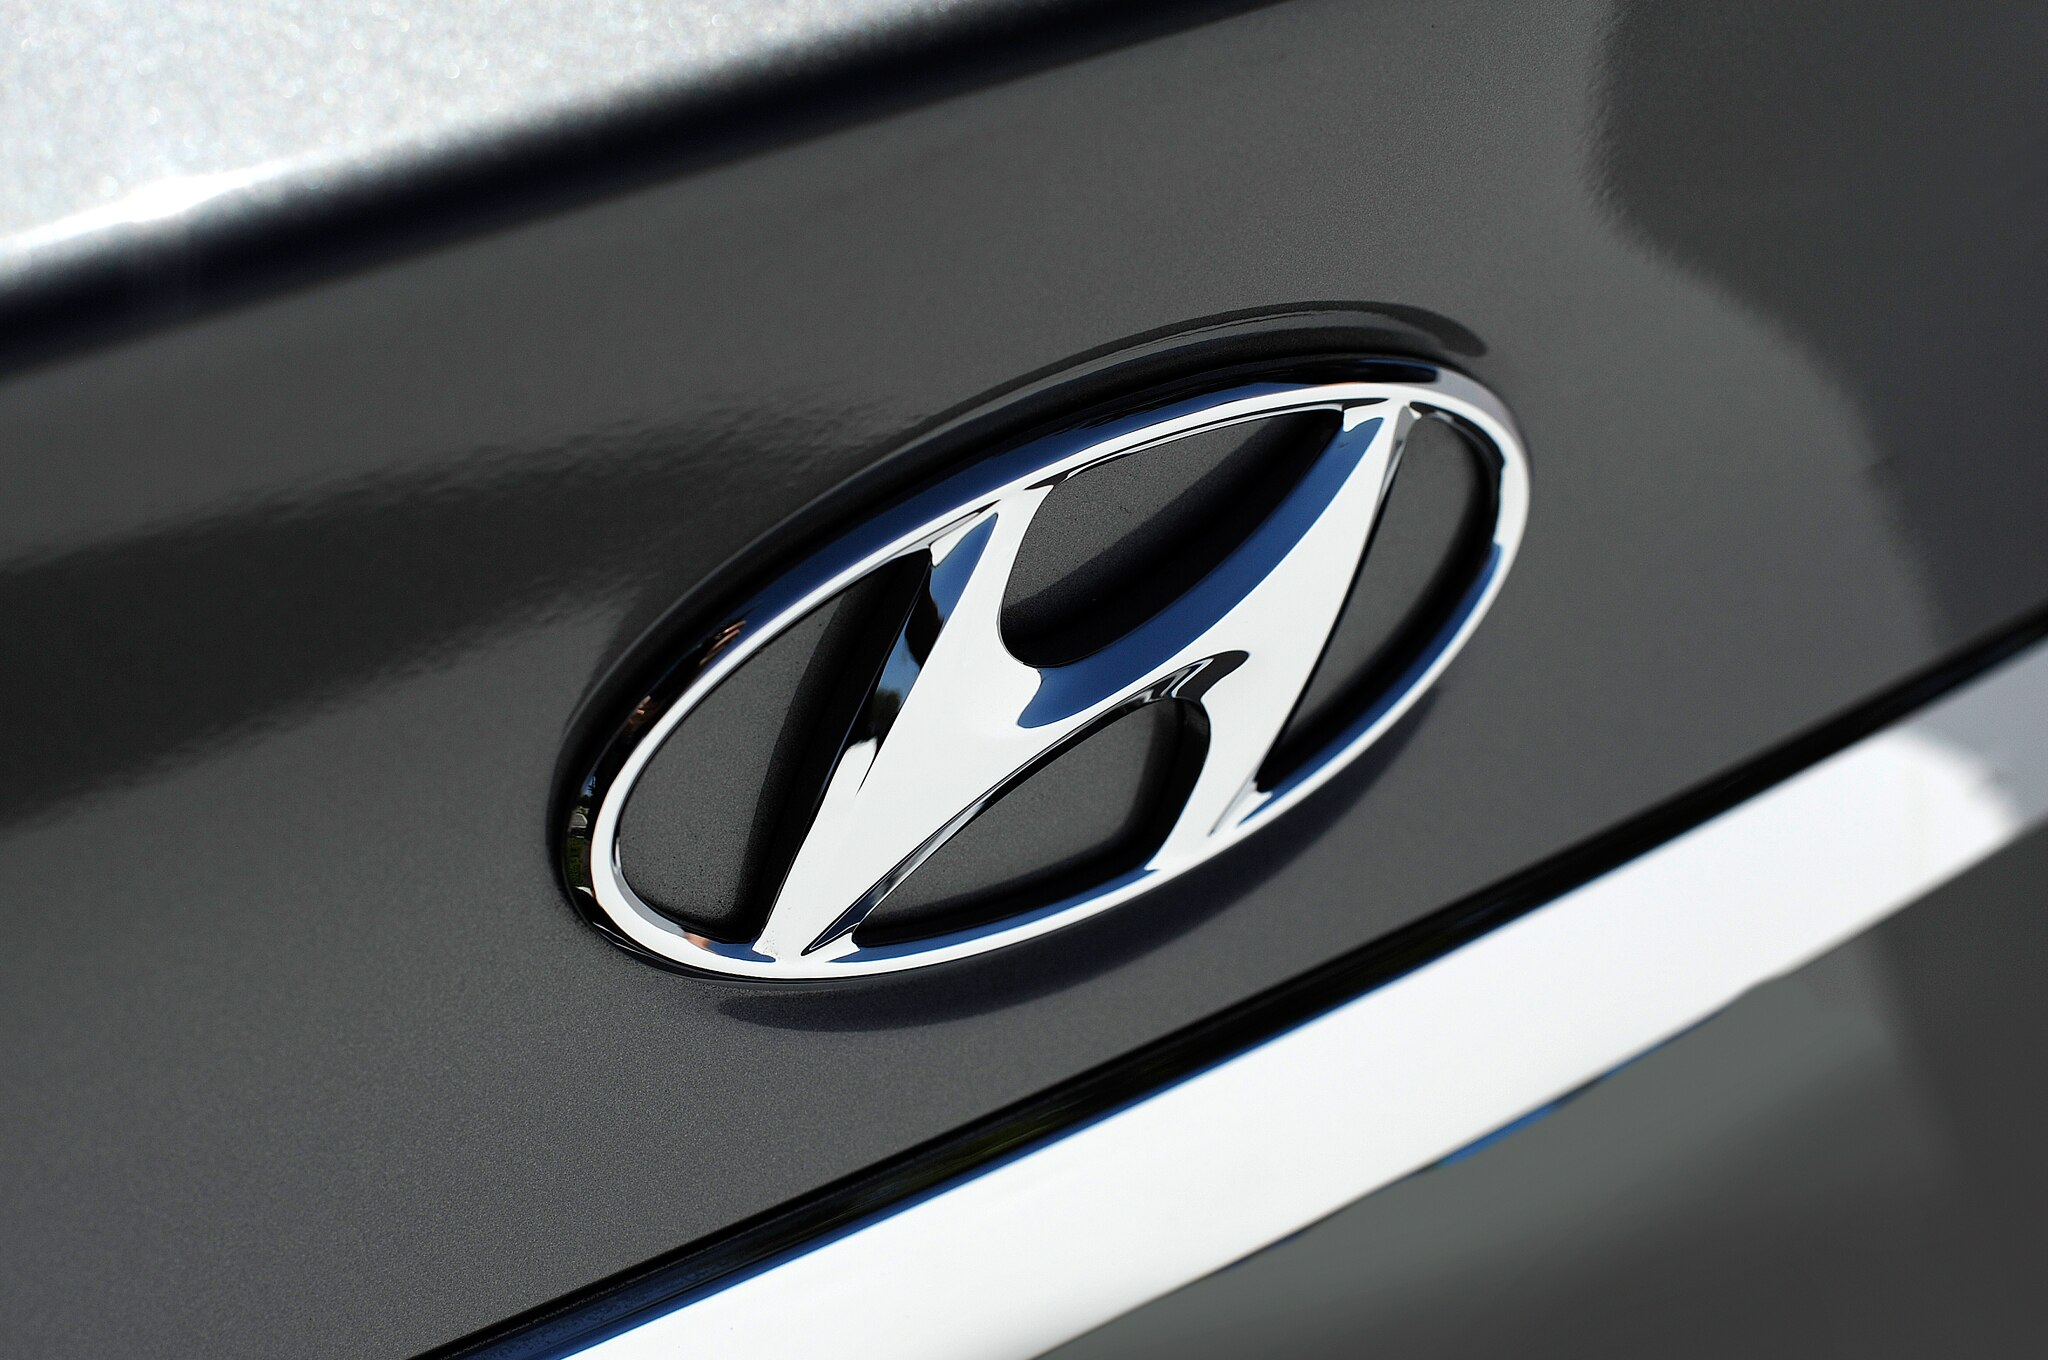 2014 Hyundai Sonata Badge